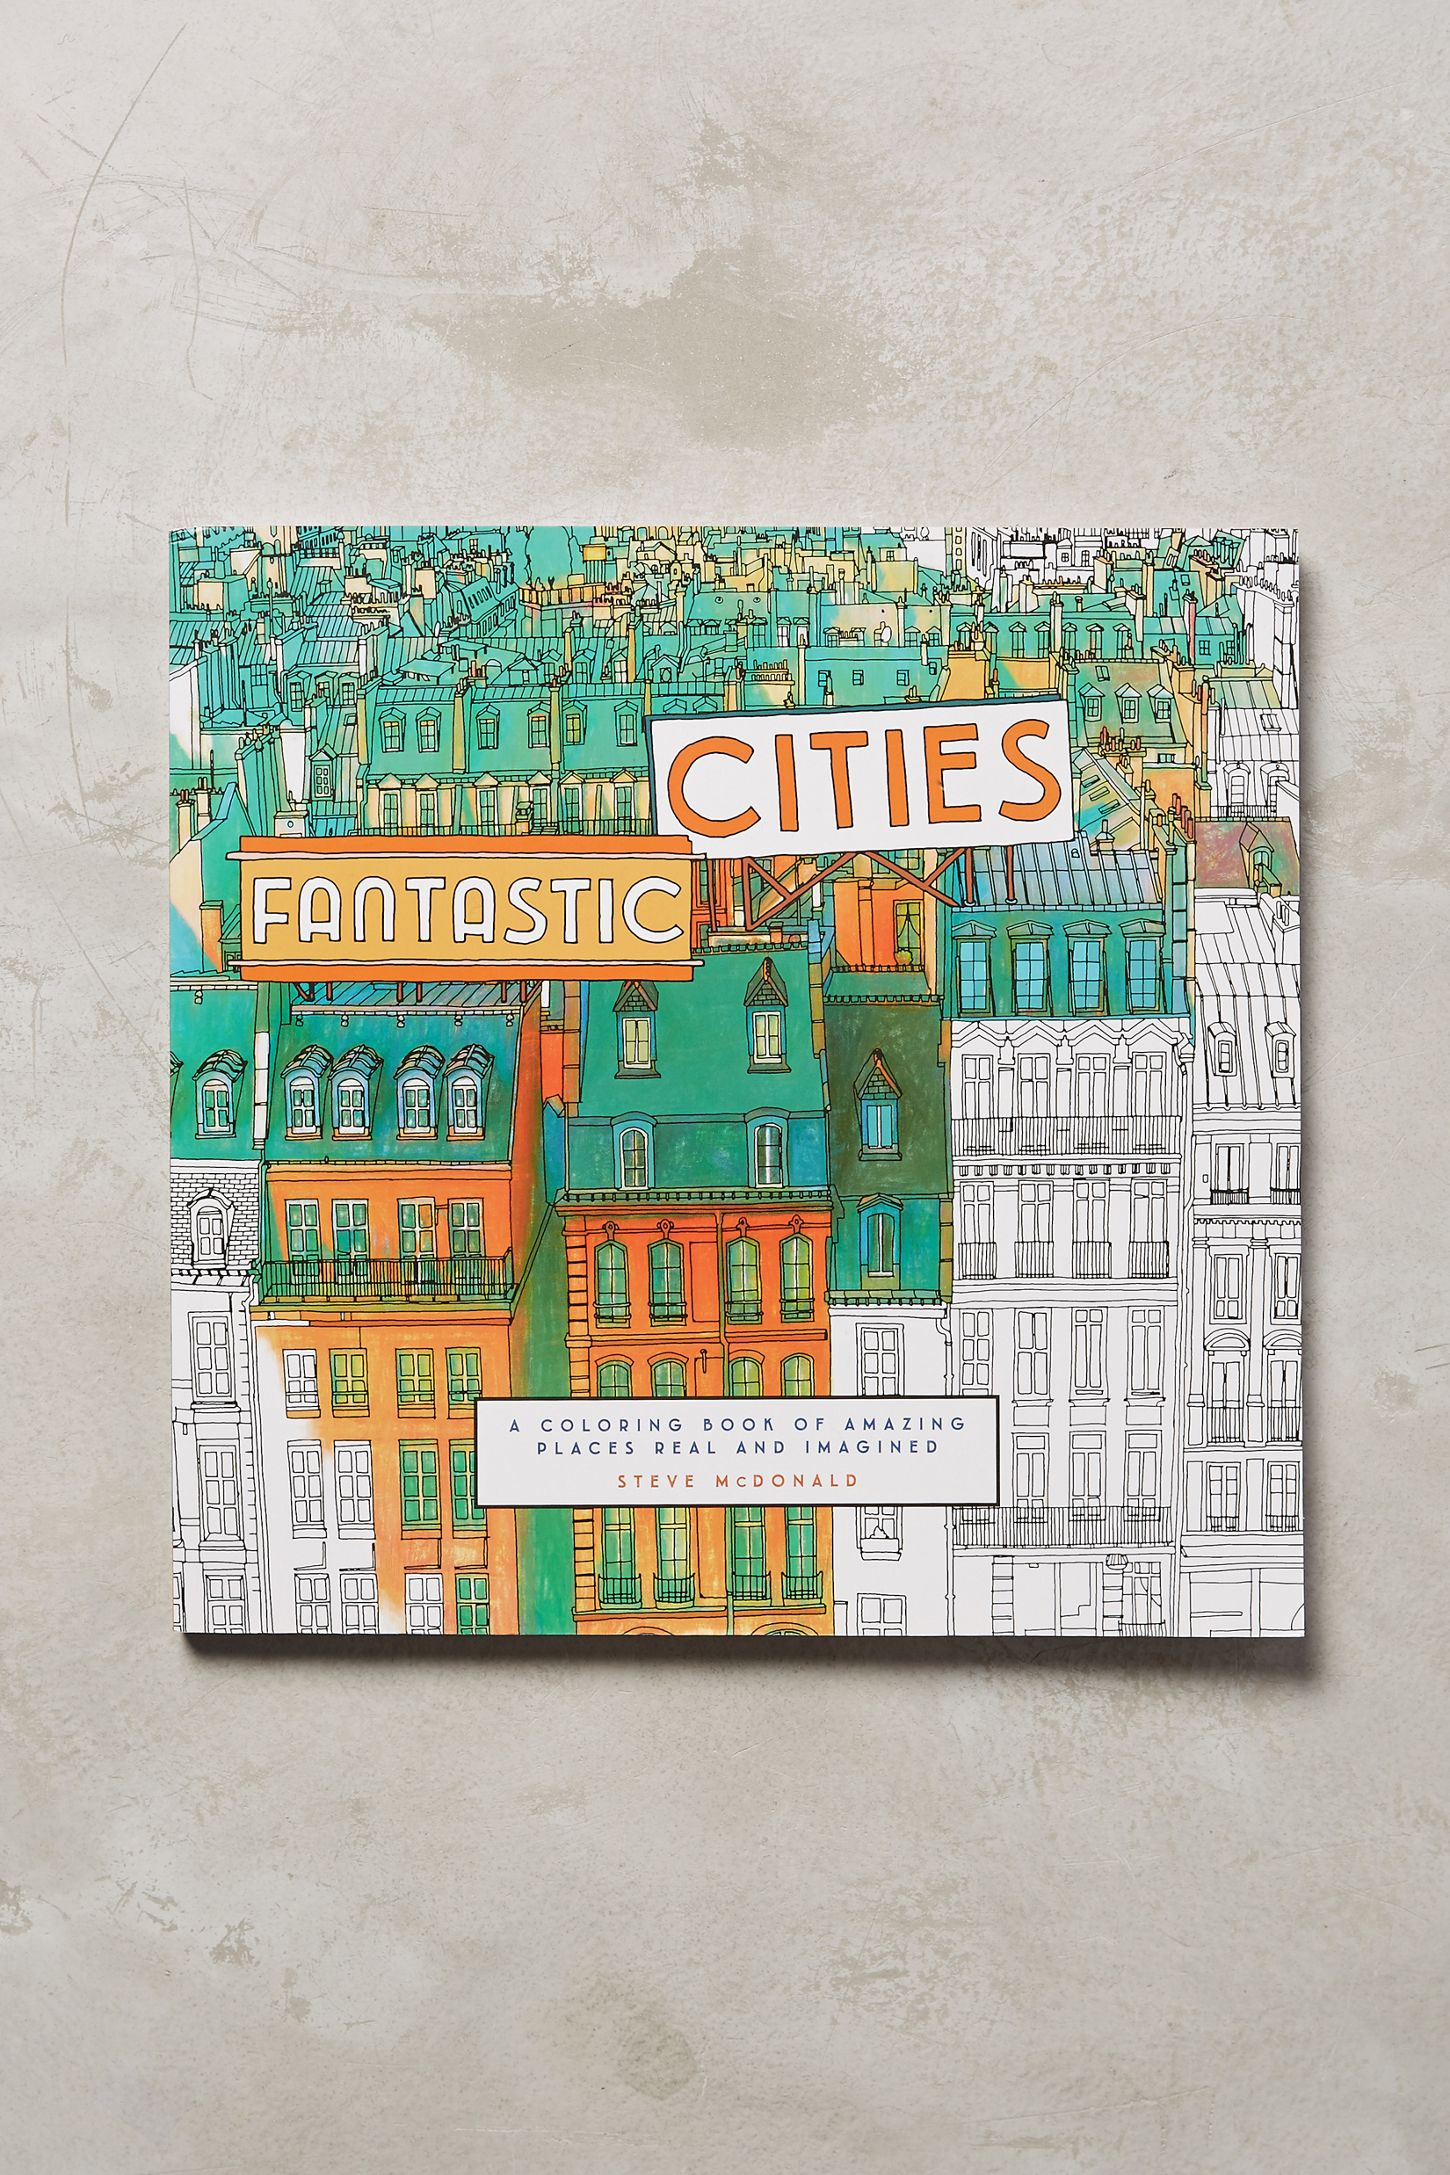 Fantastic Cities Coloring Book Tap Image To Zoom Hover Your Mouse Over An Double